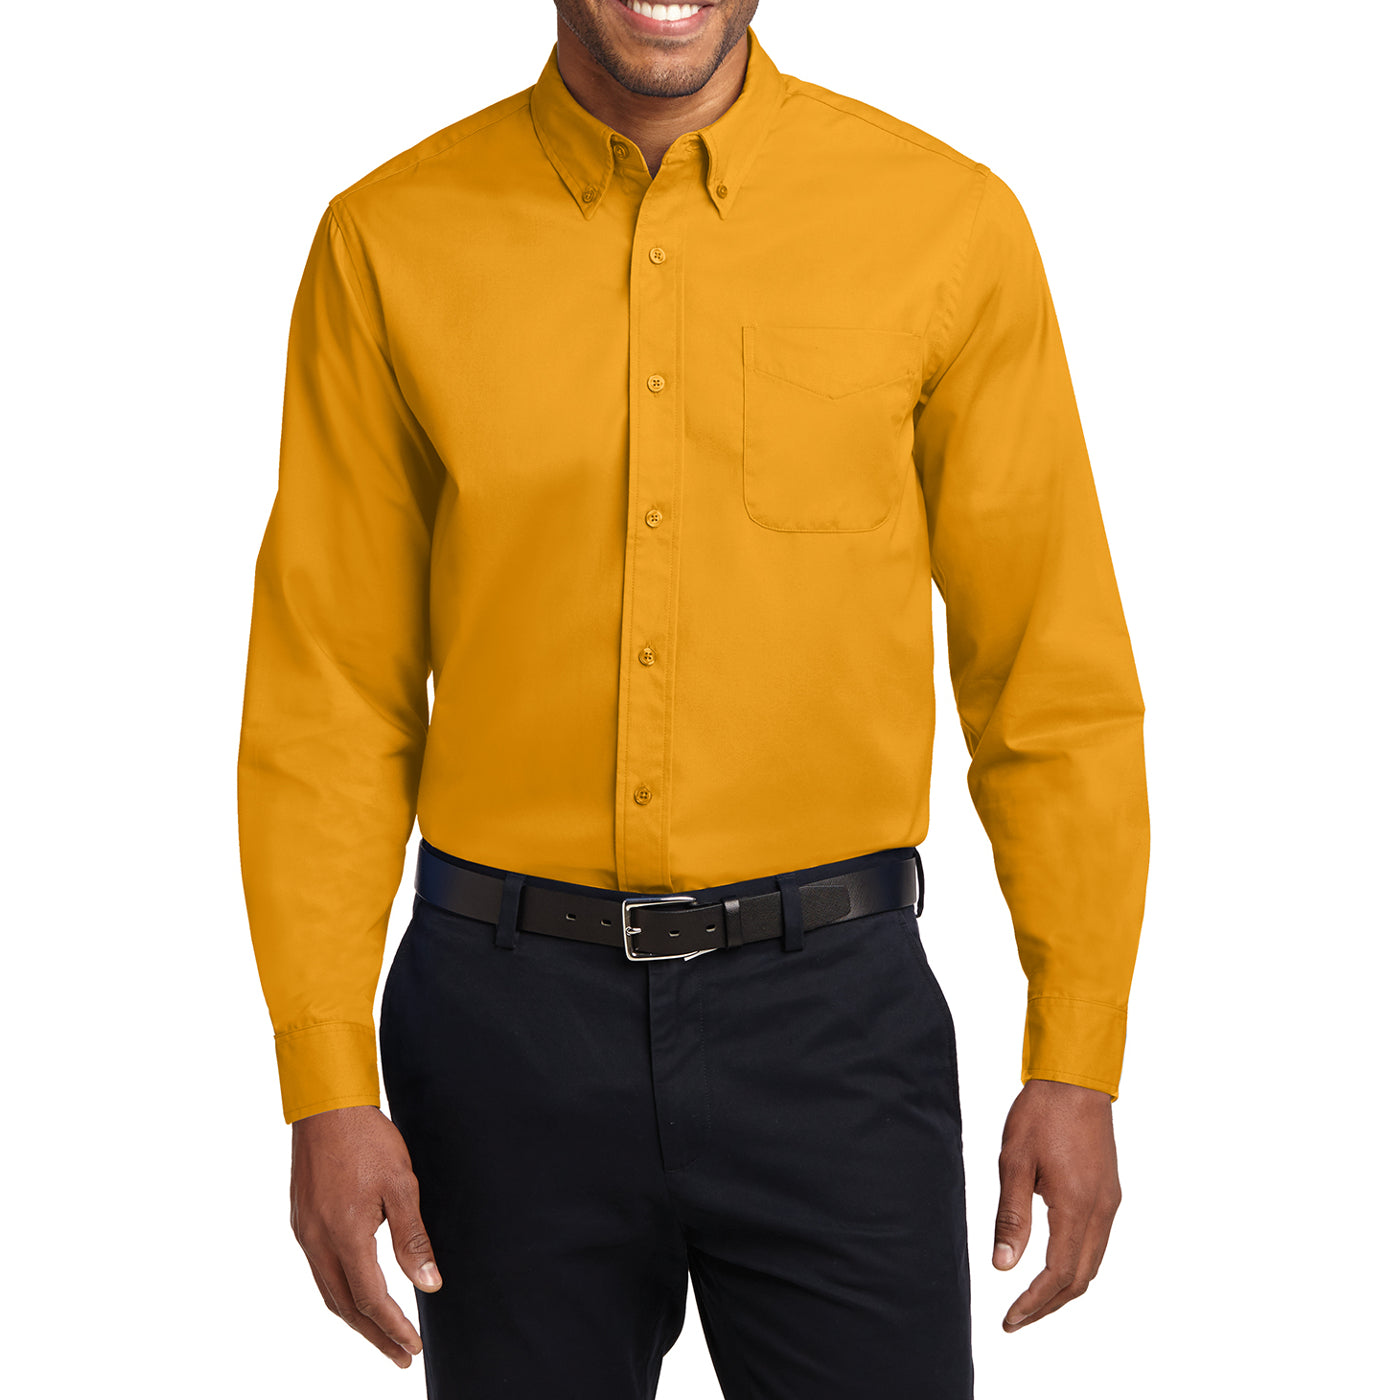 Men's Long Sleeve Easy Care Shirt - Athletic Gold/ Light Stone - Front